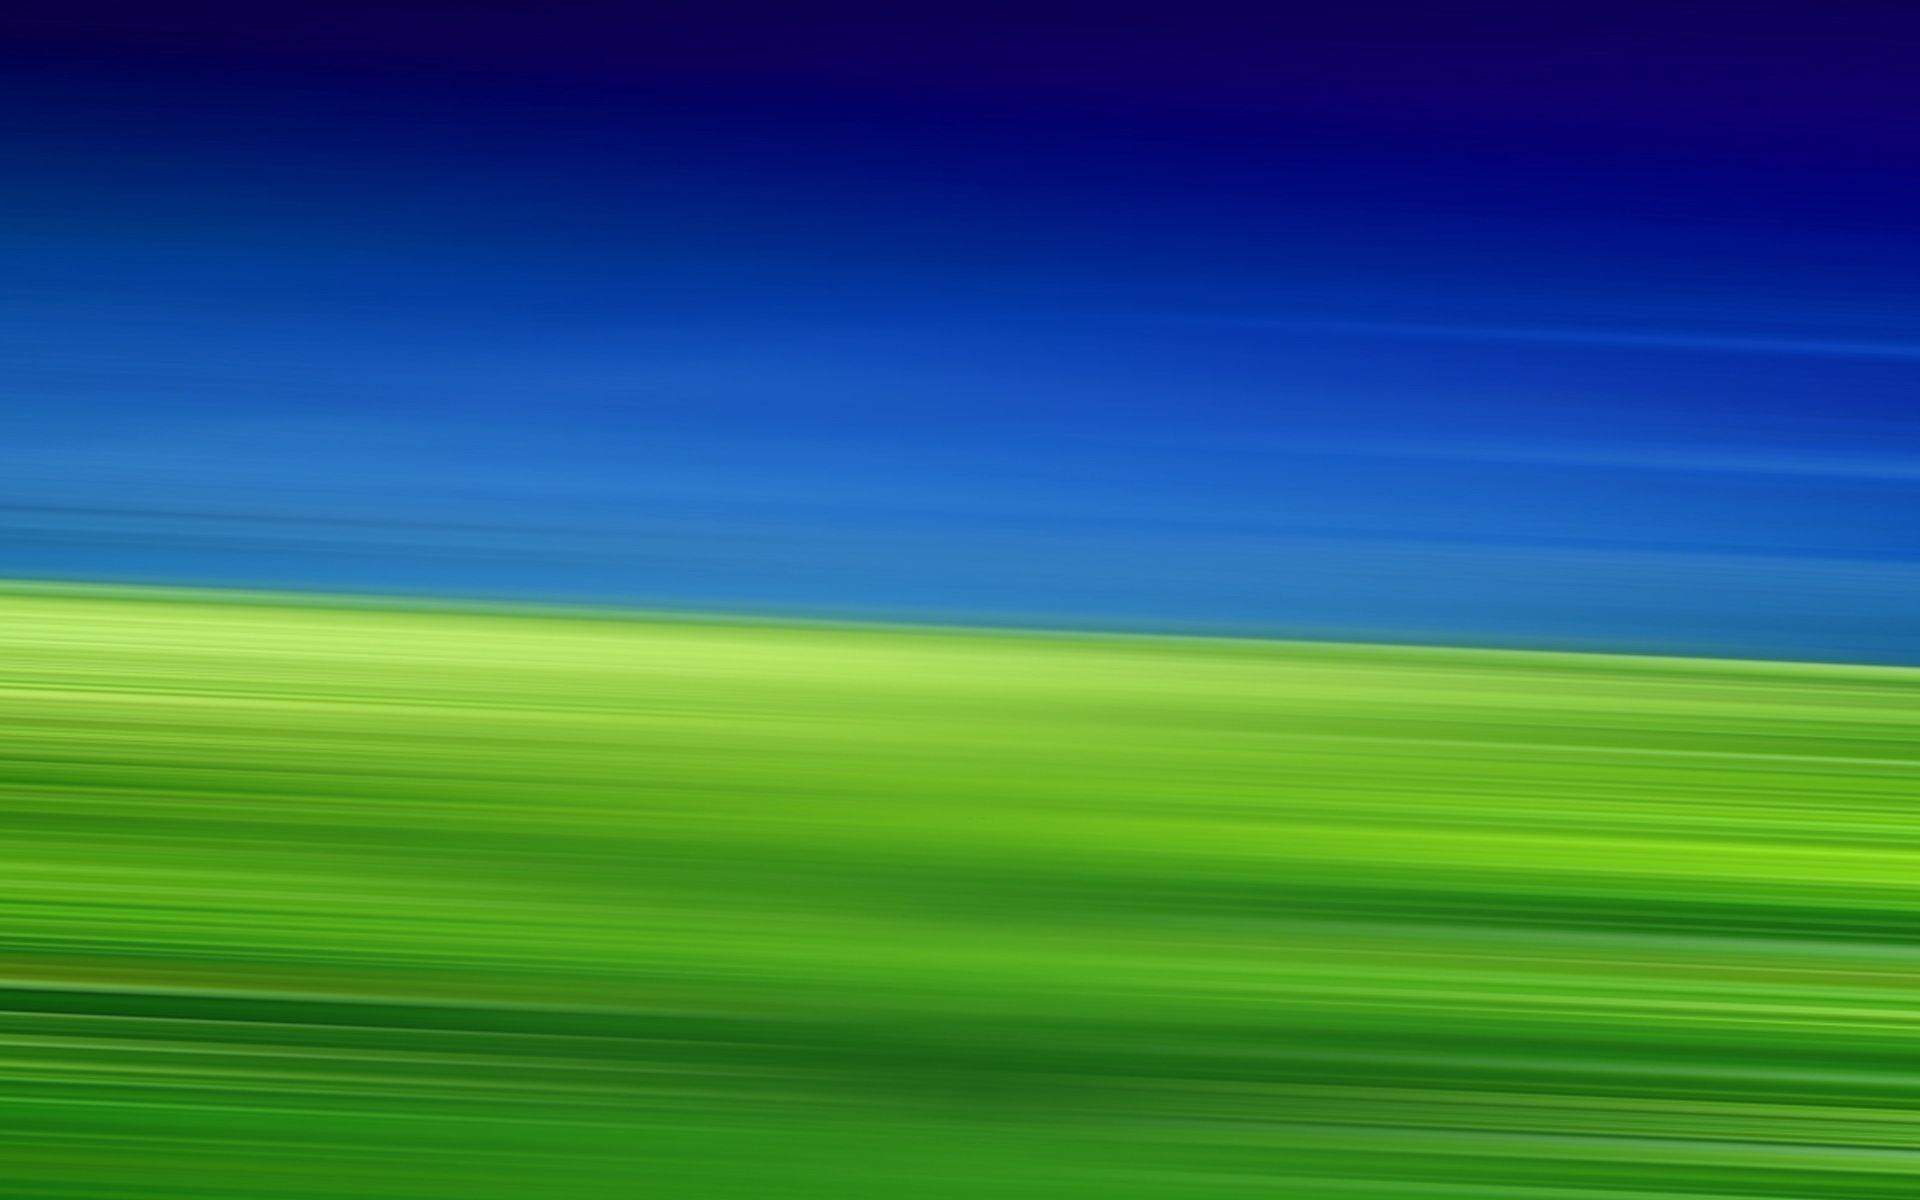 Check The Best Collection Of Blue And Green Wallpaper Hd For Desktop Laptop Tablet And Mobile Device Blue Sky Background Dark Green Wallpaper Green Wallpaper